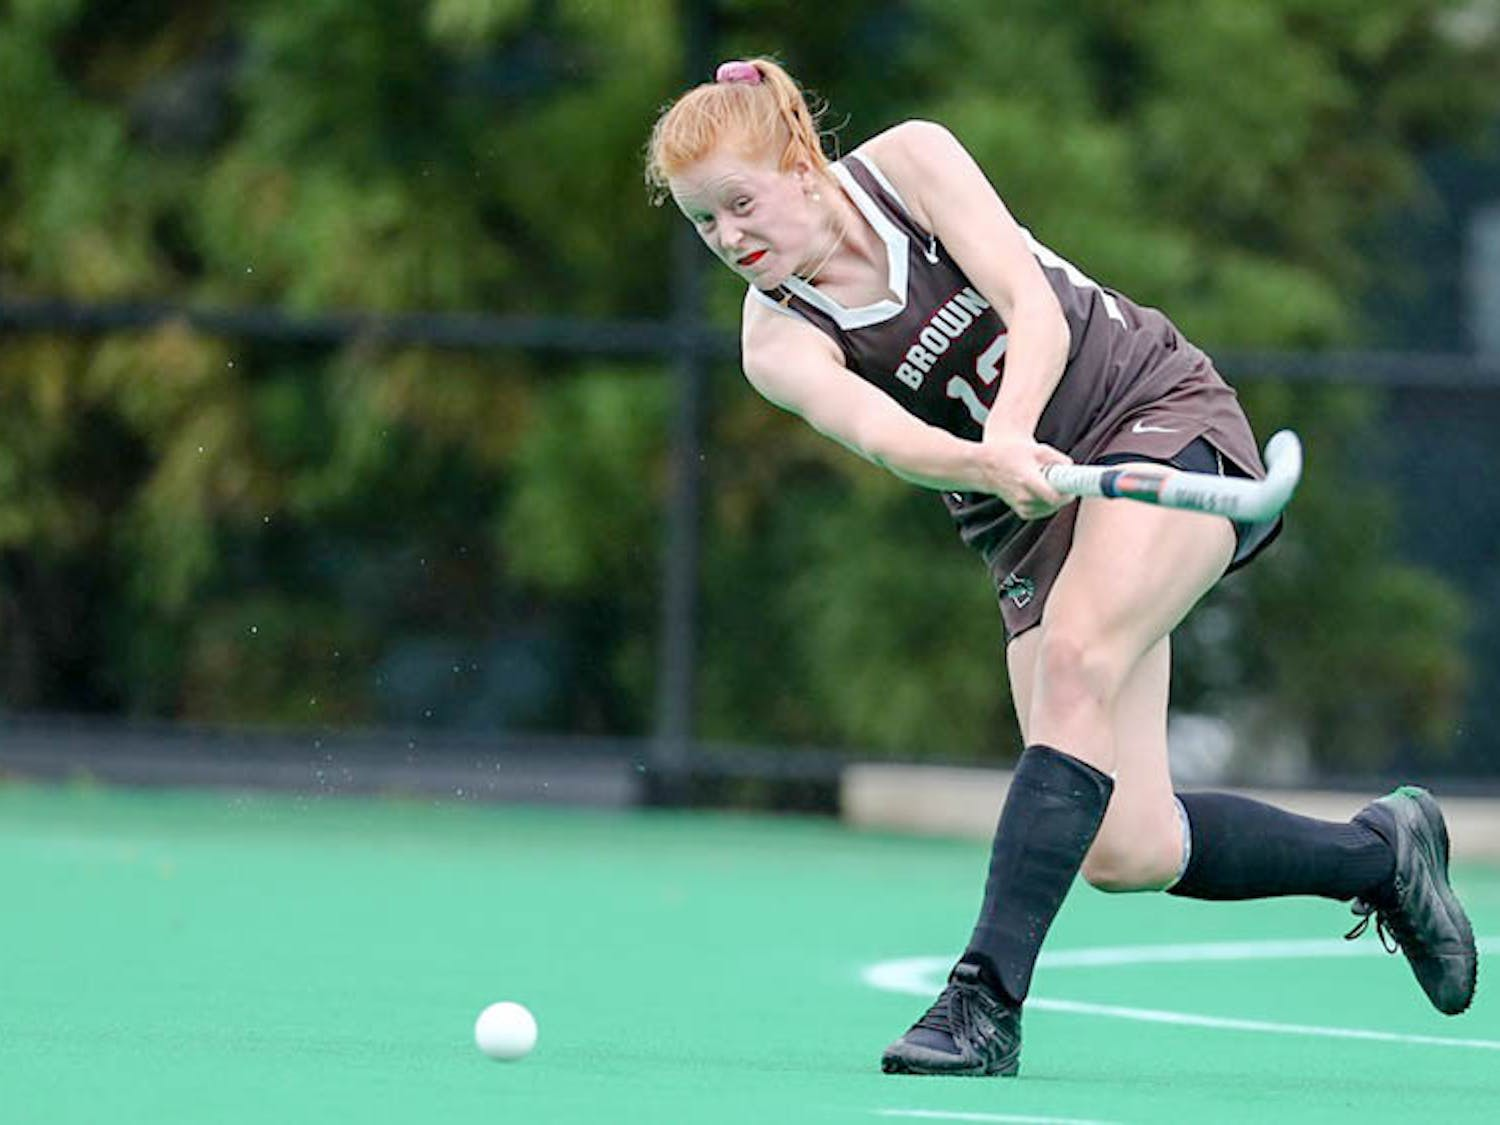 Messing_Field-Hockey_CO_Brown-Athletics_